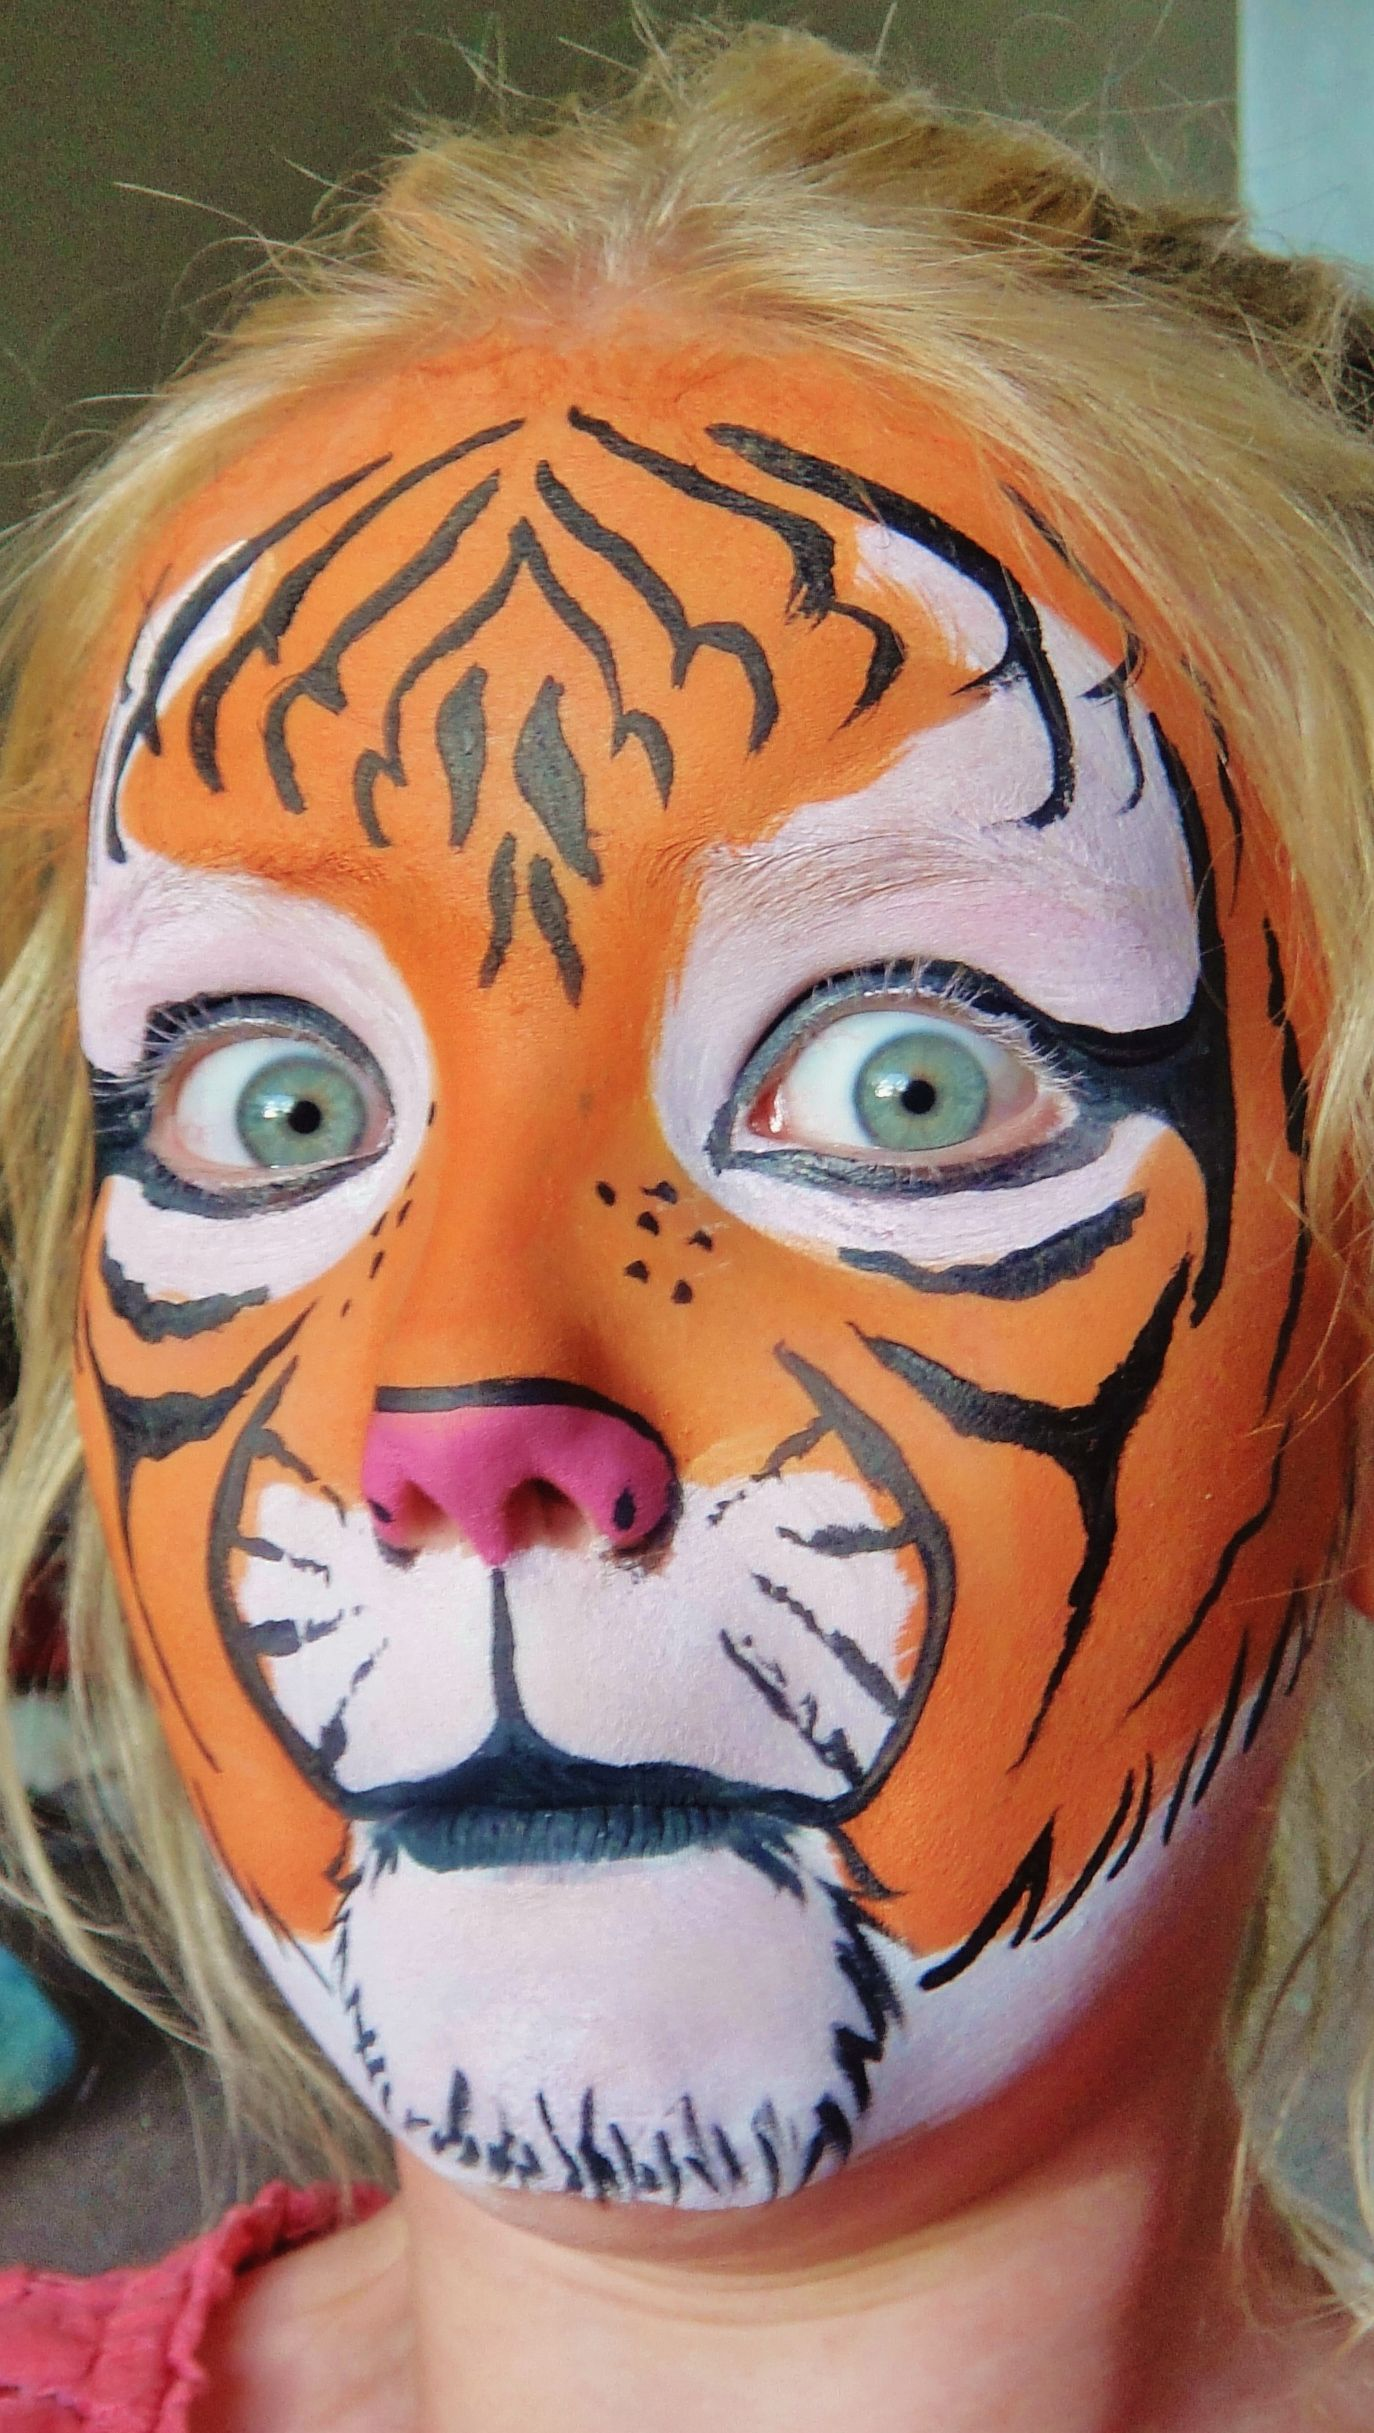 Funny Tiger face paint kids fun clown carnival fair